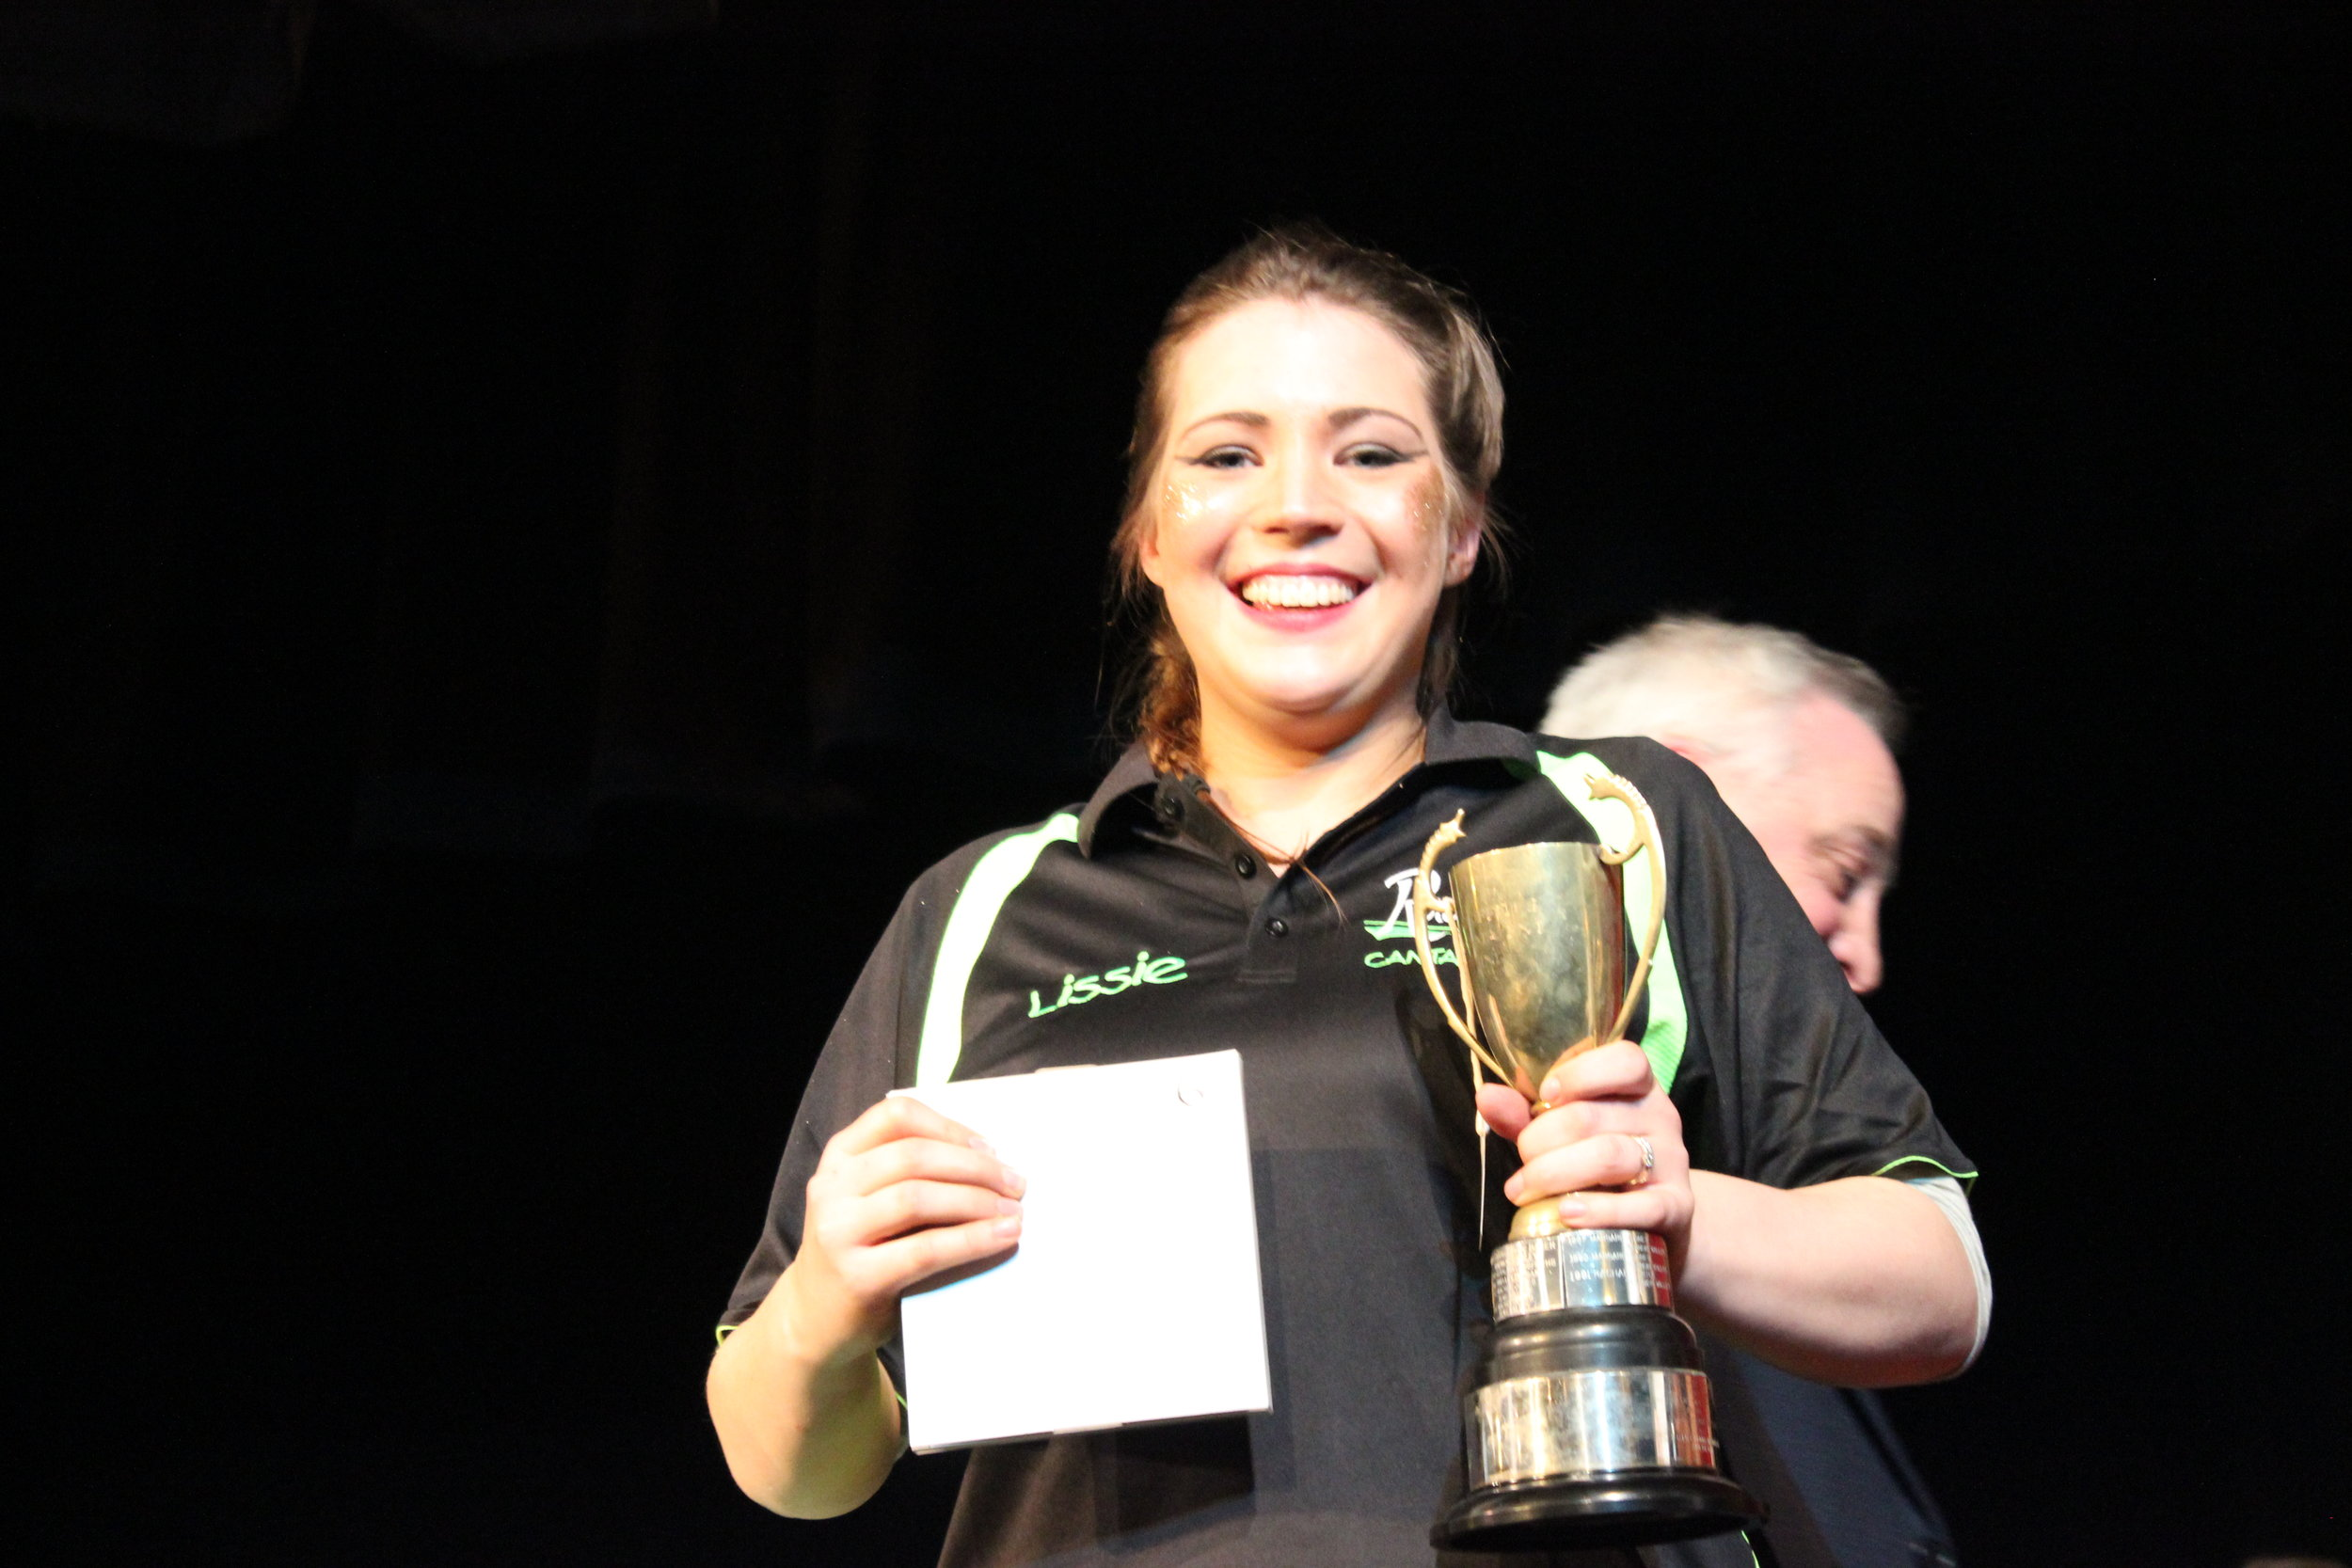 Lisbeth Bowen - Cantal YFC - Blodwen Griffiths Cup - Best Female ndividual Performance